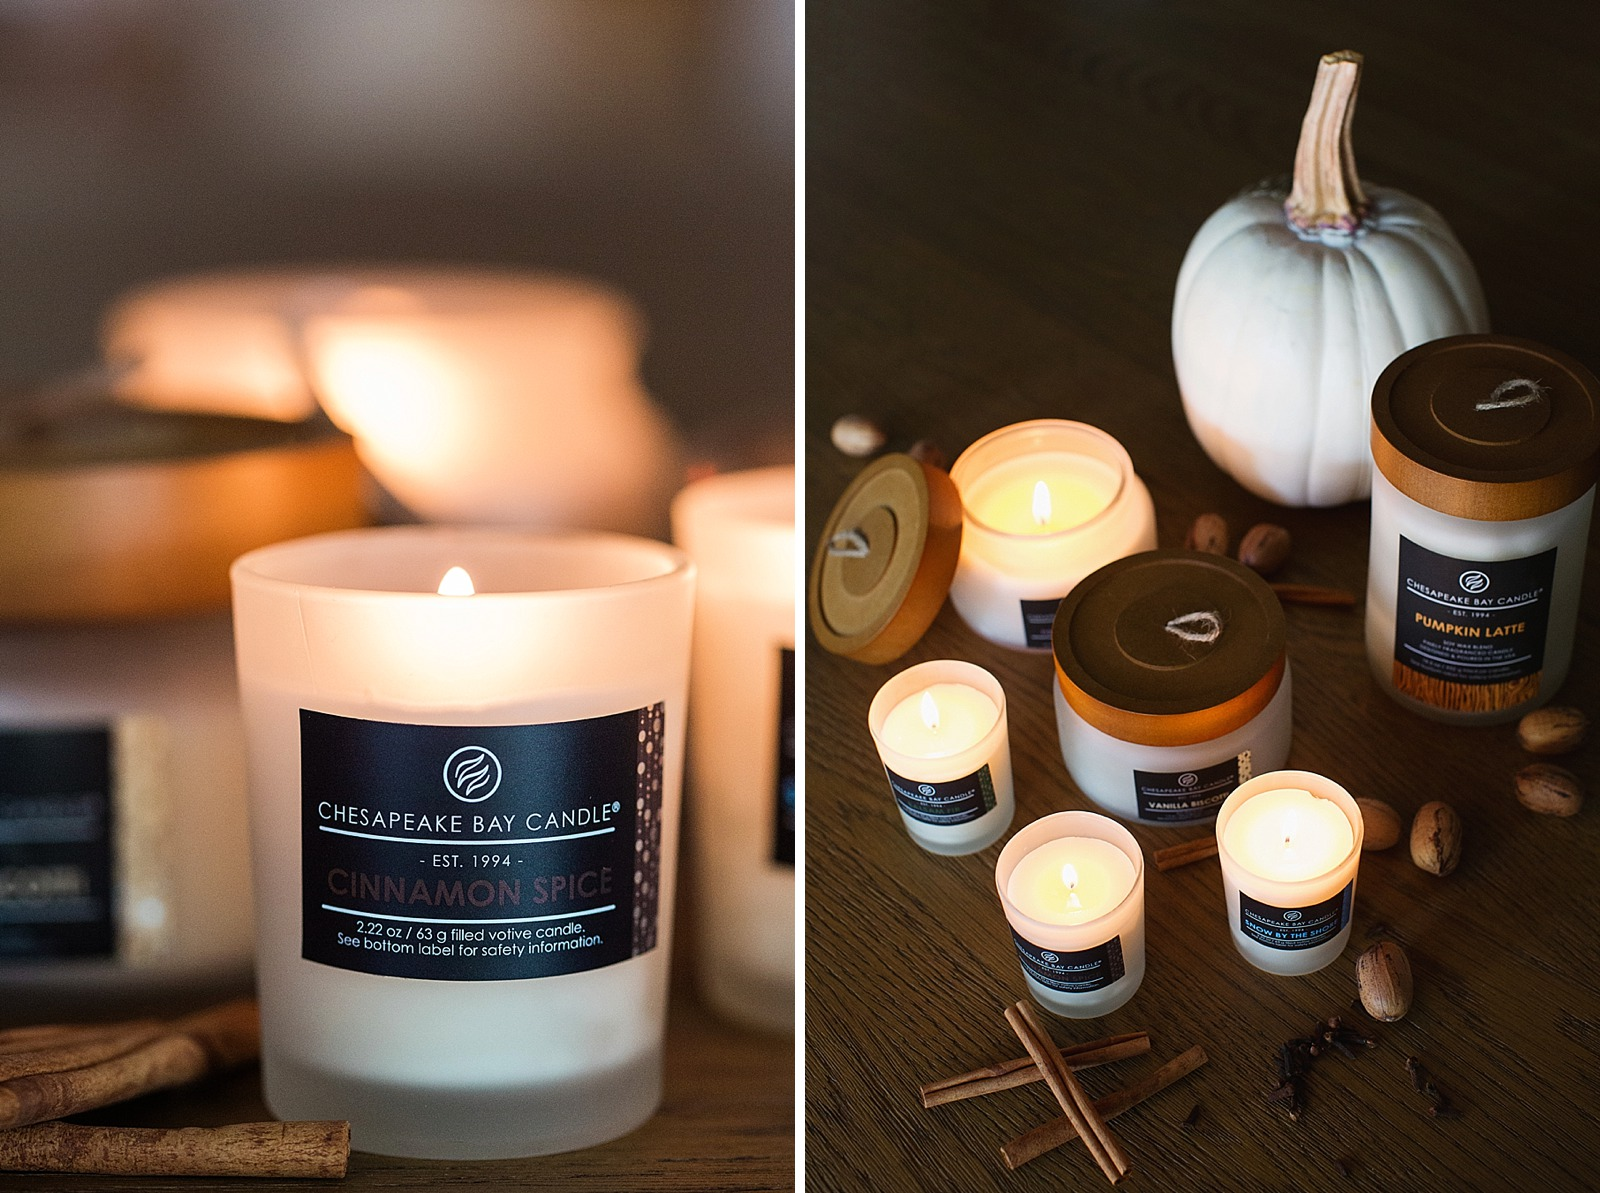 chesapeake-bay-candle-heritage-collection-best-fall-winter-holiday-candles-soy-mix-essential-oils-7